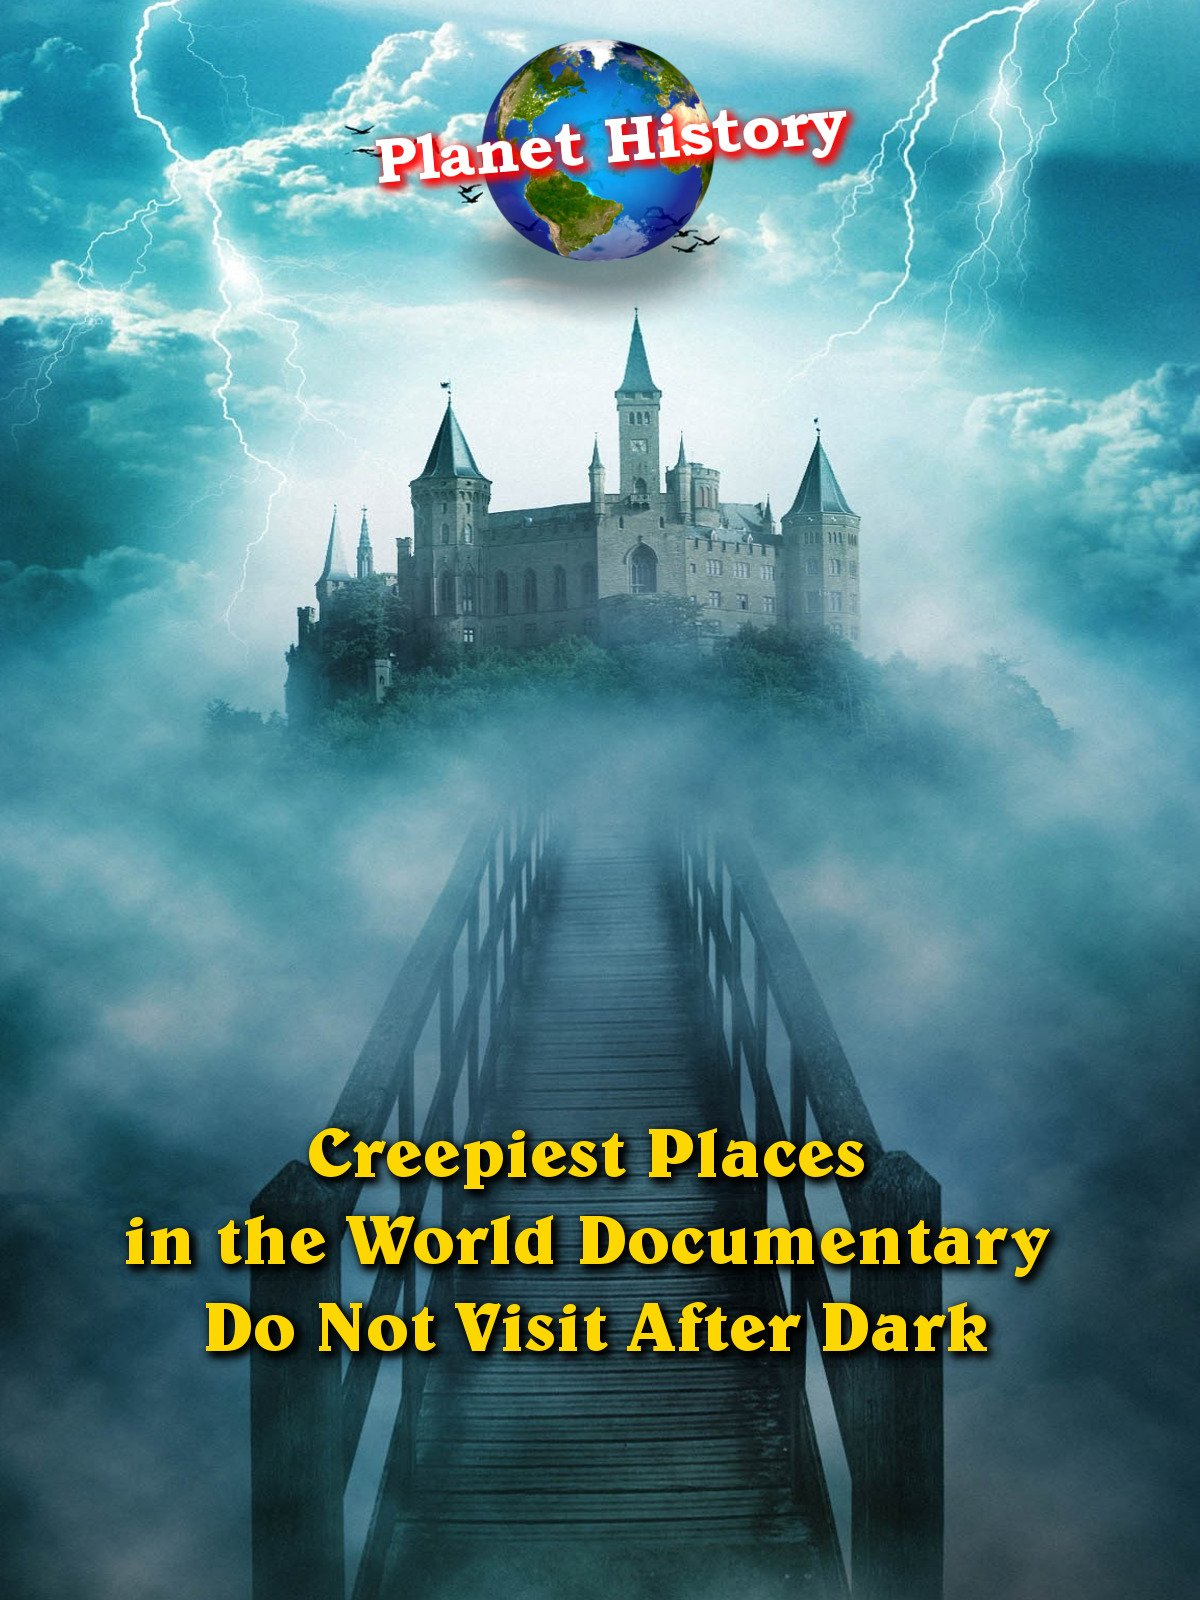 Creepiest Places in the World Documentary - Do Not Visit After Dark - Planet History